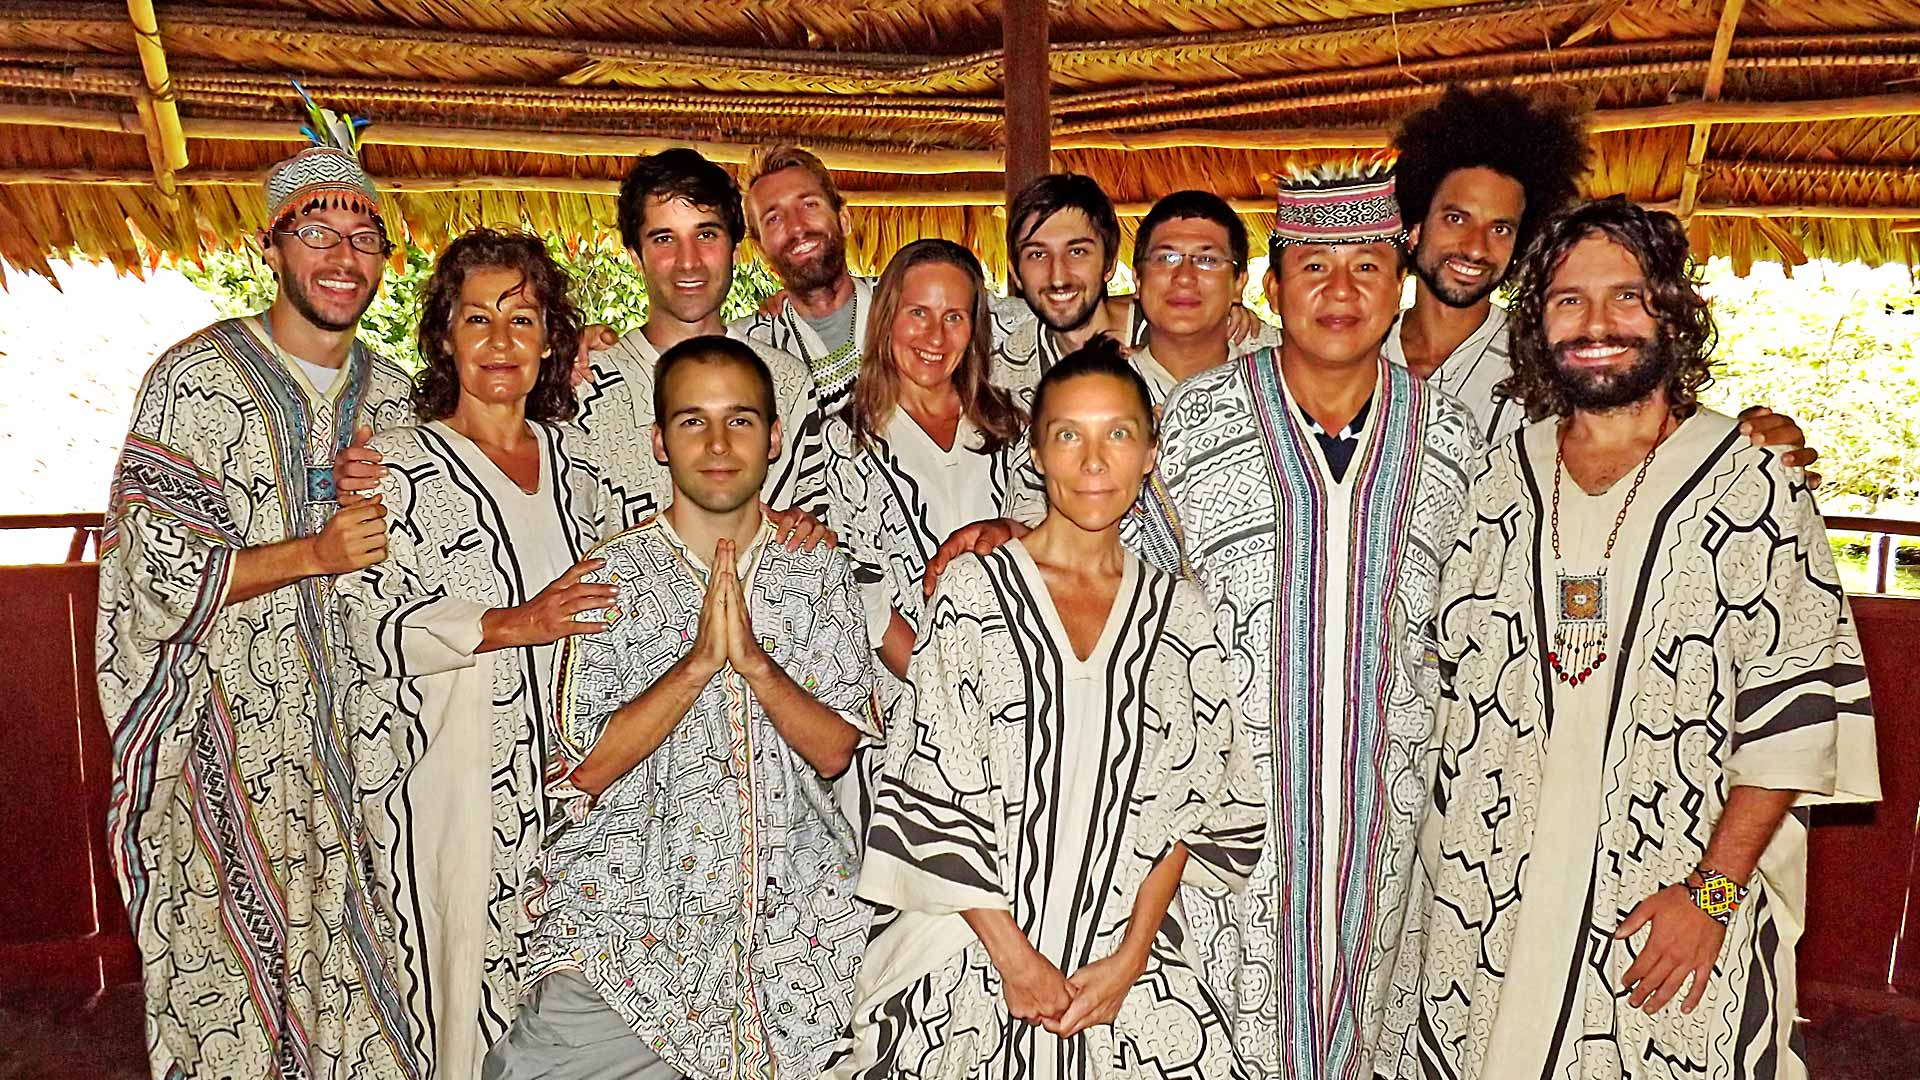 Ayahuasca Foundation Curandero Ayahuasca Initiation course ayahuasca training